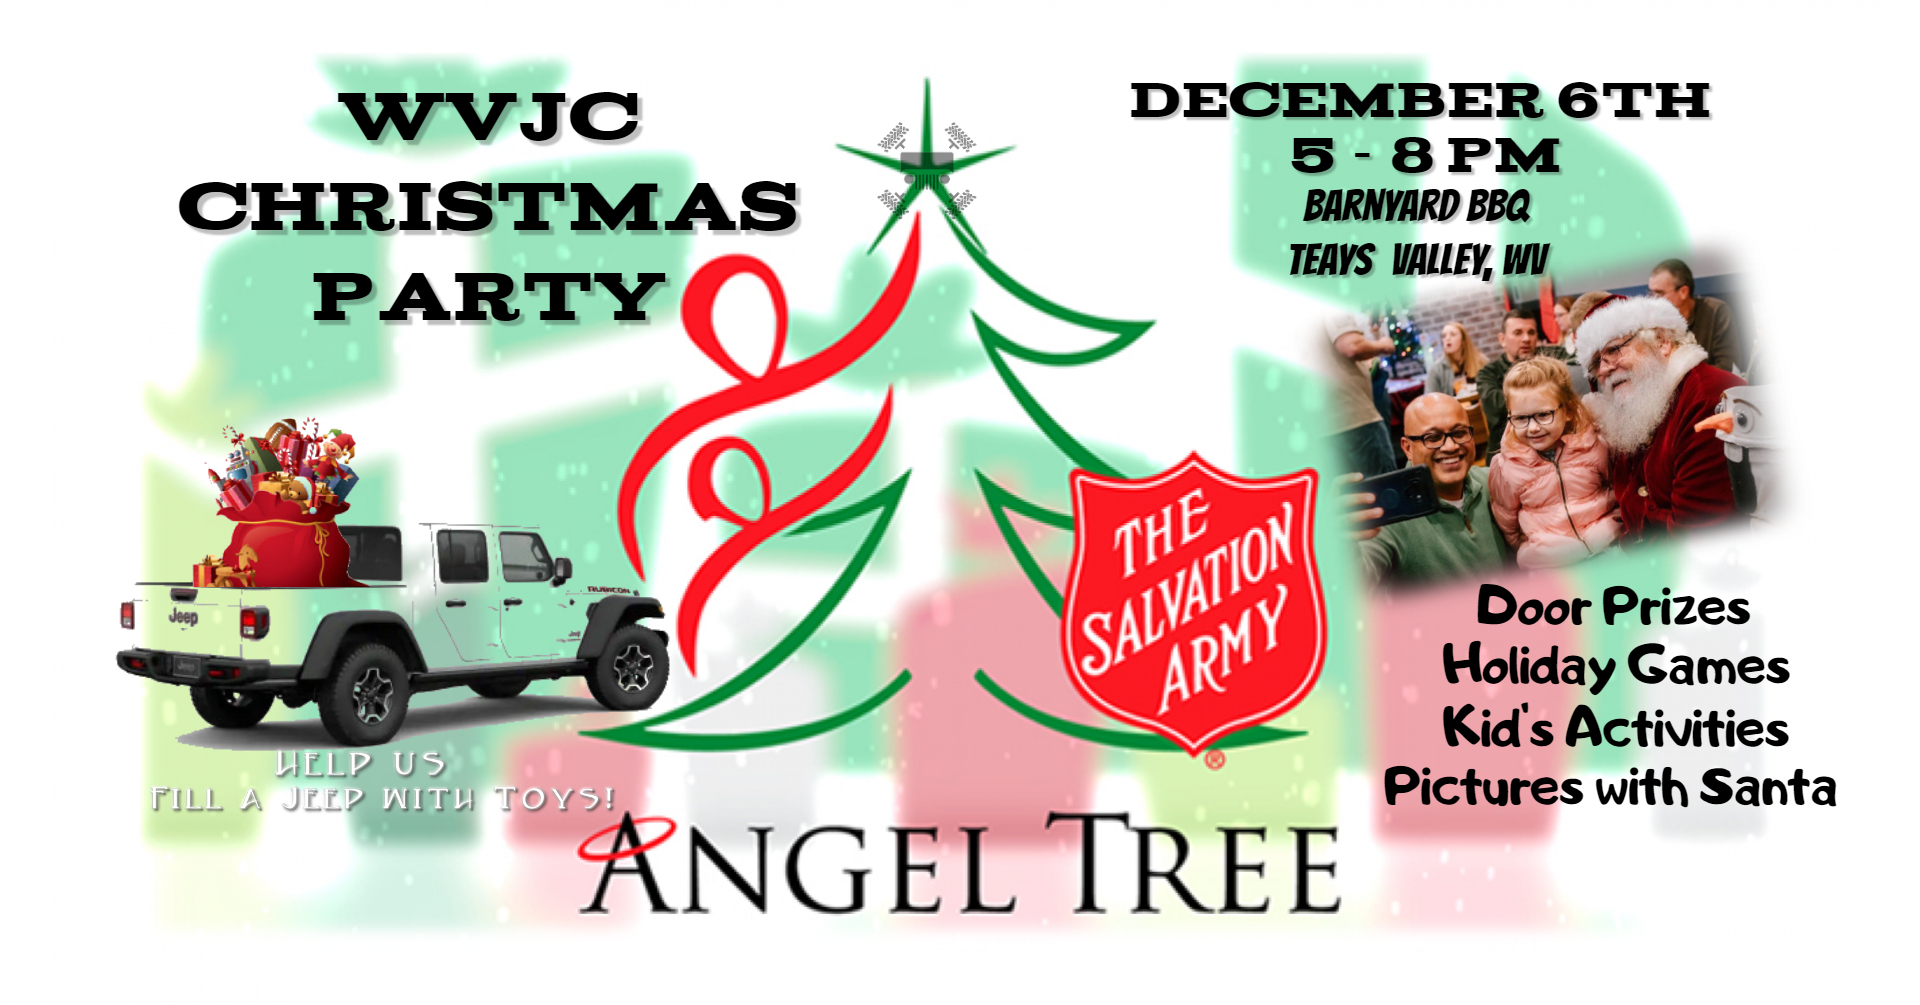 WVJC Christmas Party - Charity Event @ Barnyard BBQ, Teays Valley, WV